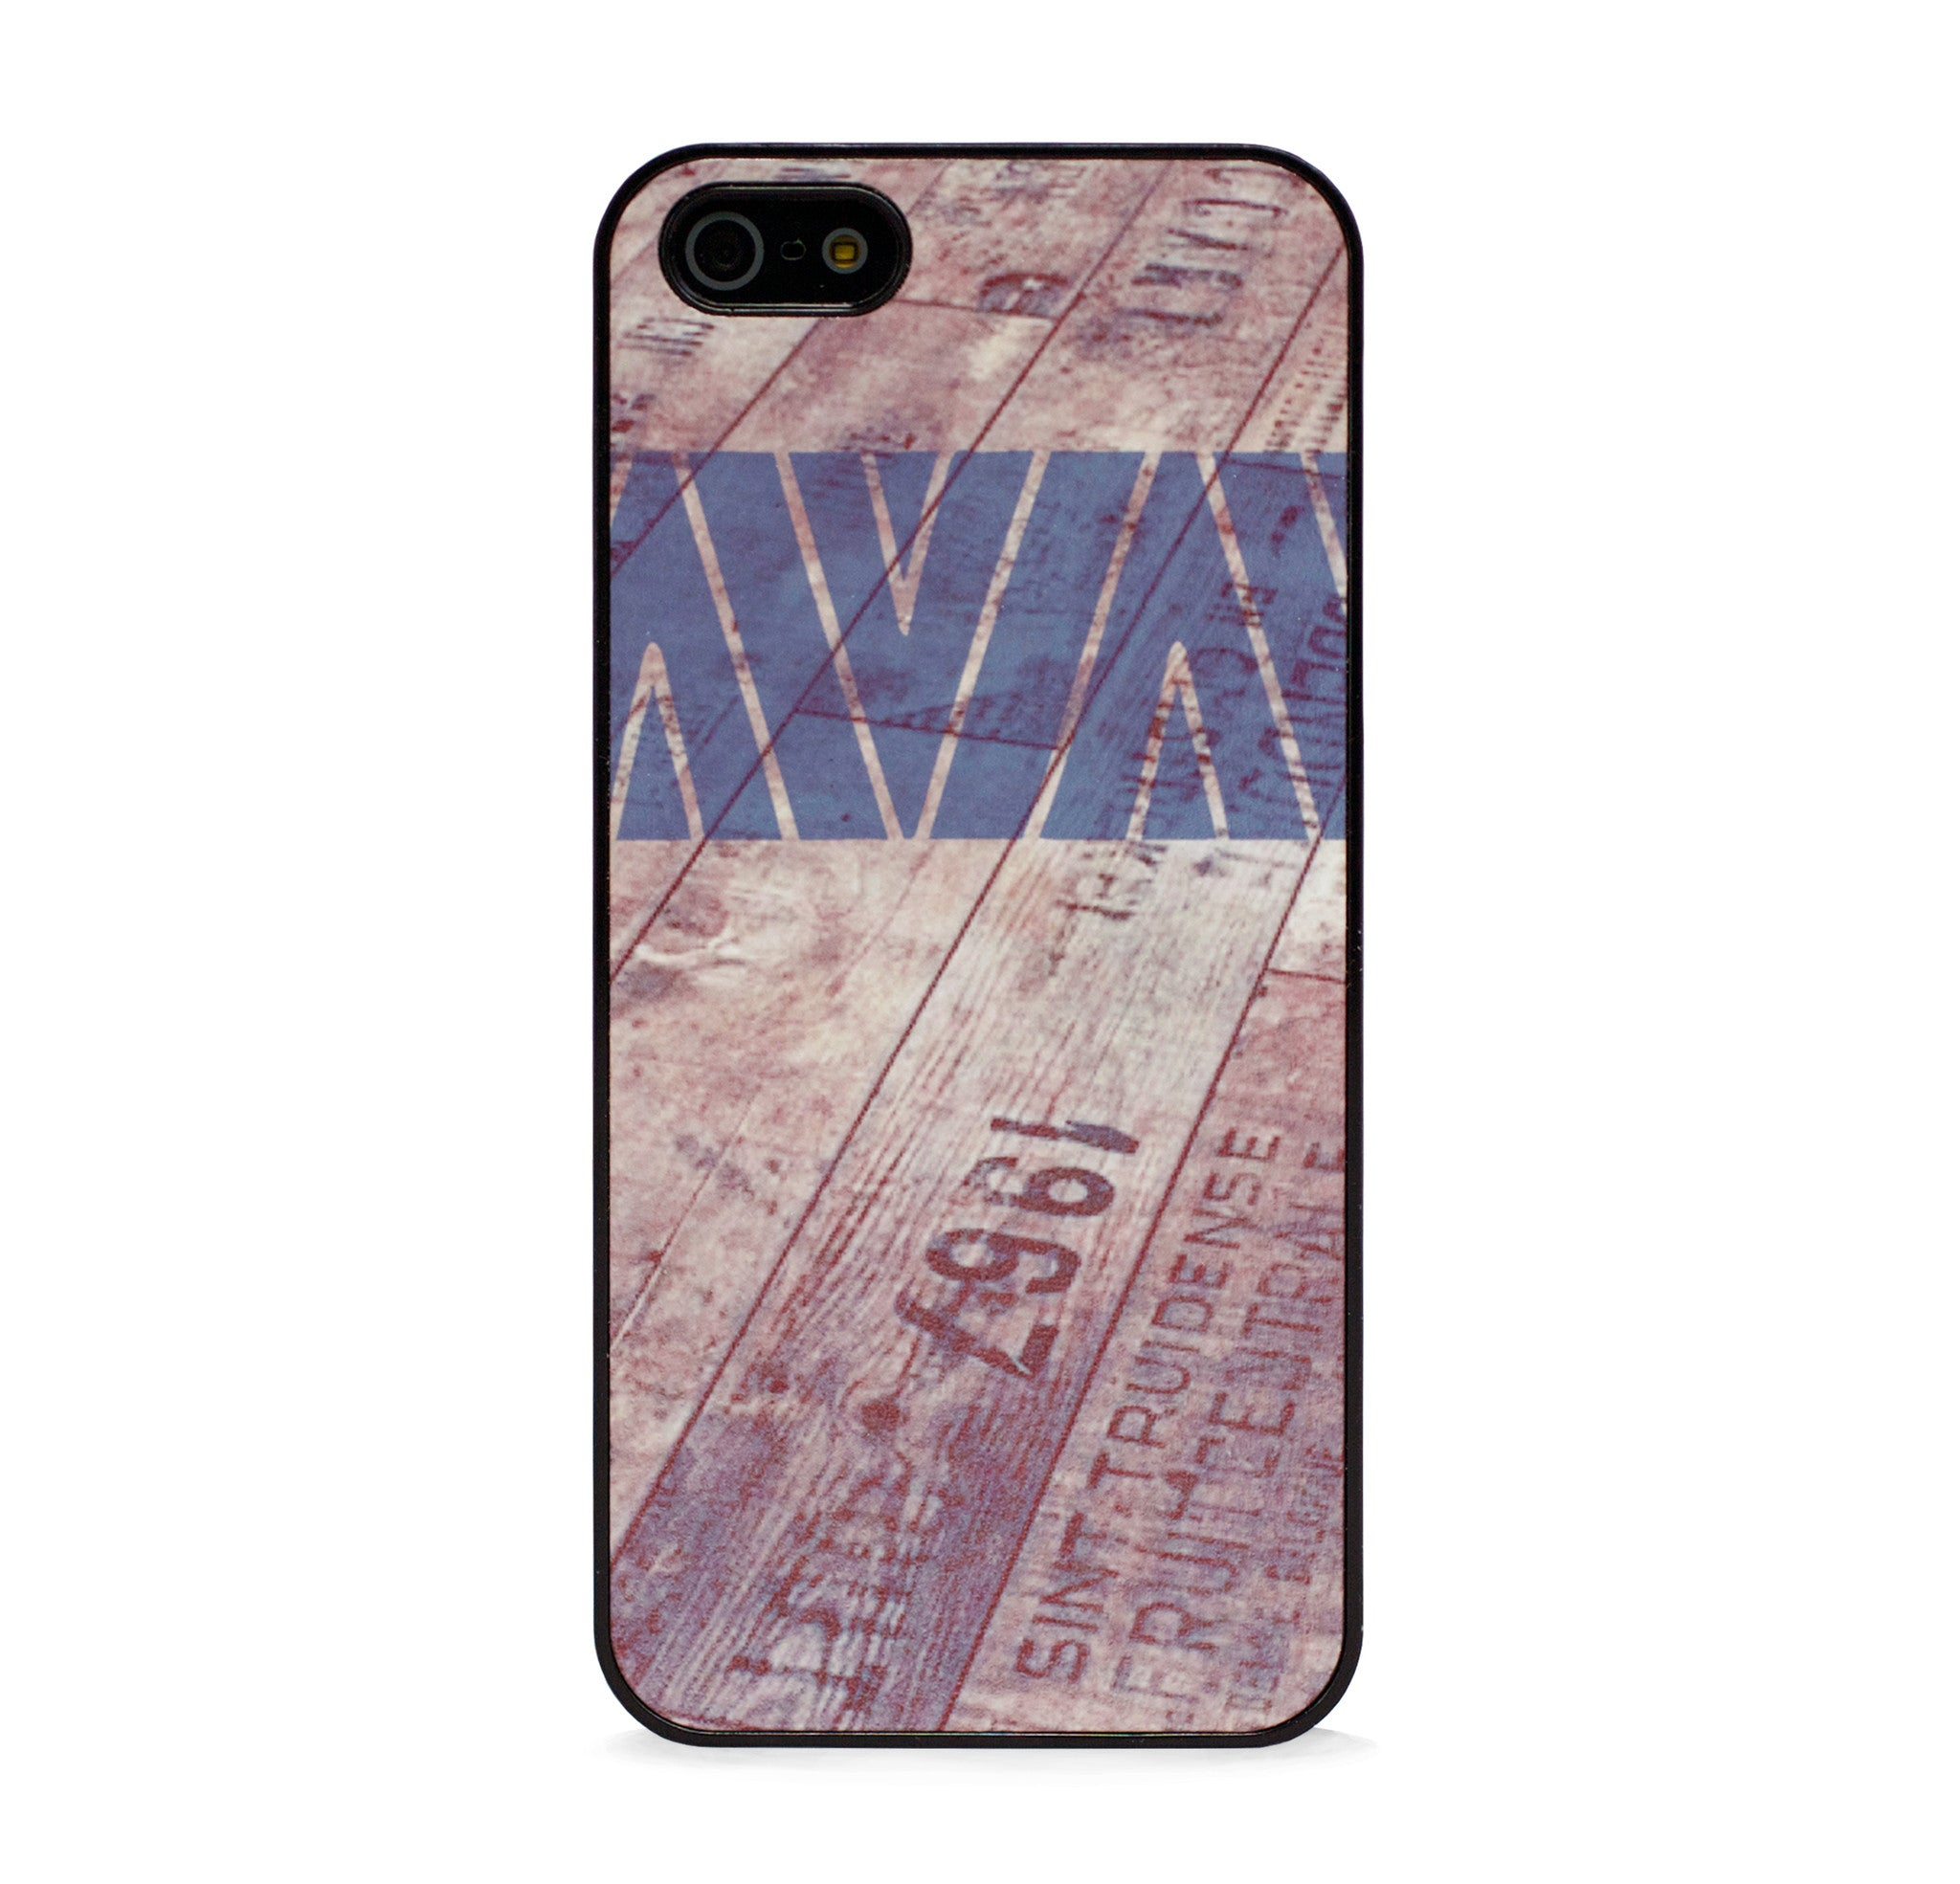 AZTEC ON WOOD GREY IPHONE 5/5S CASE